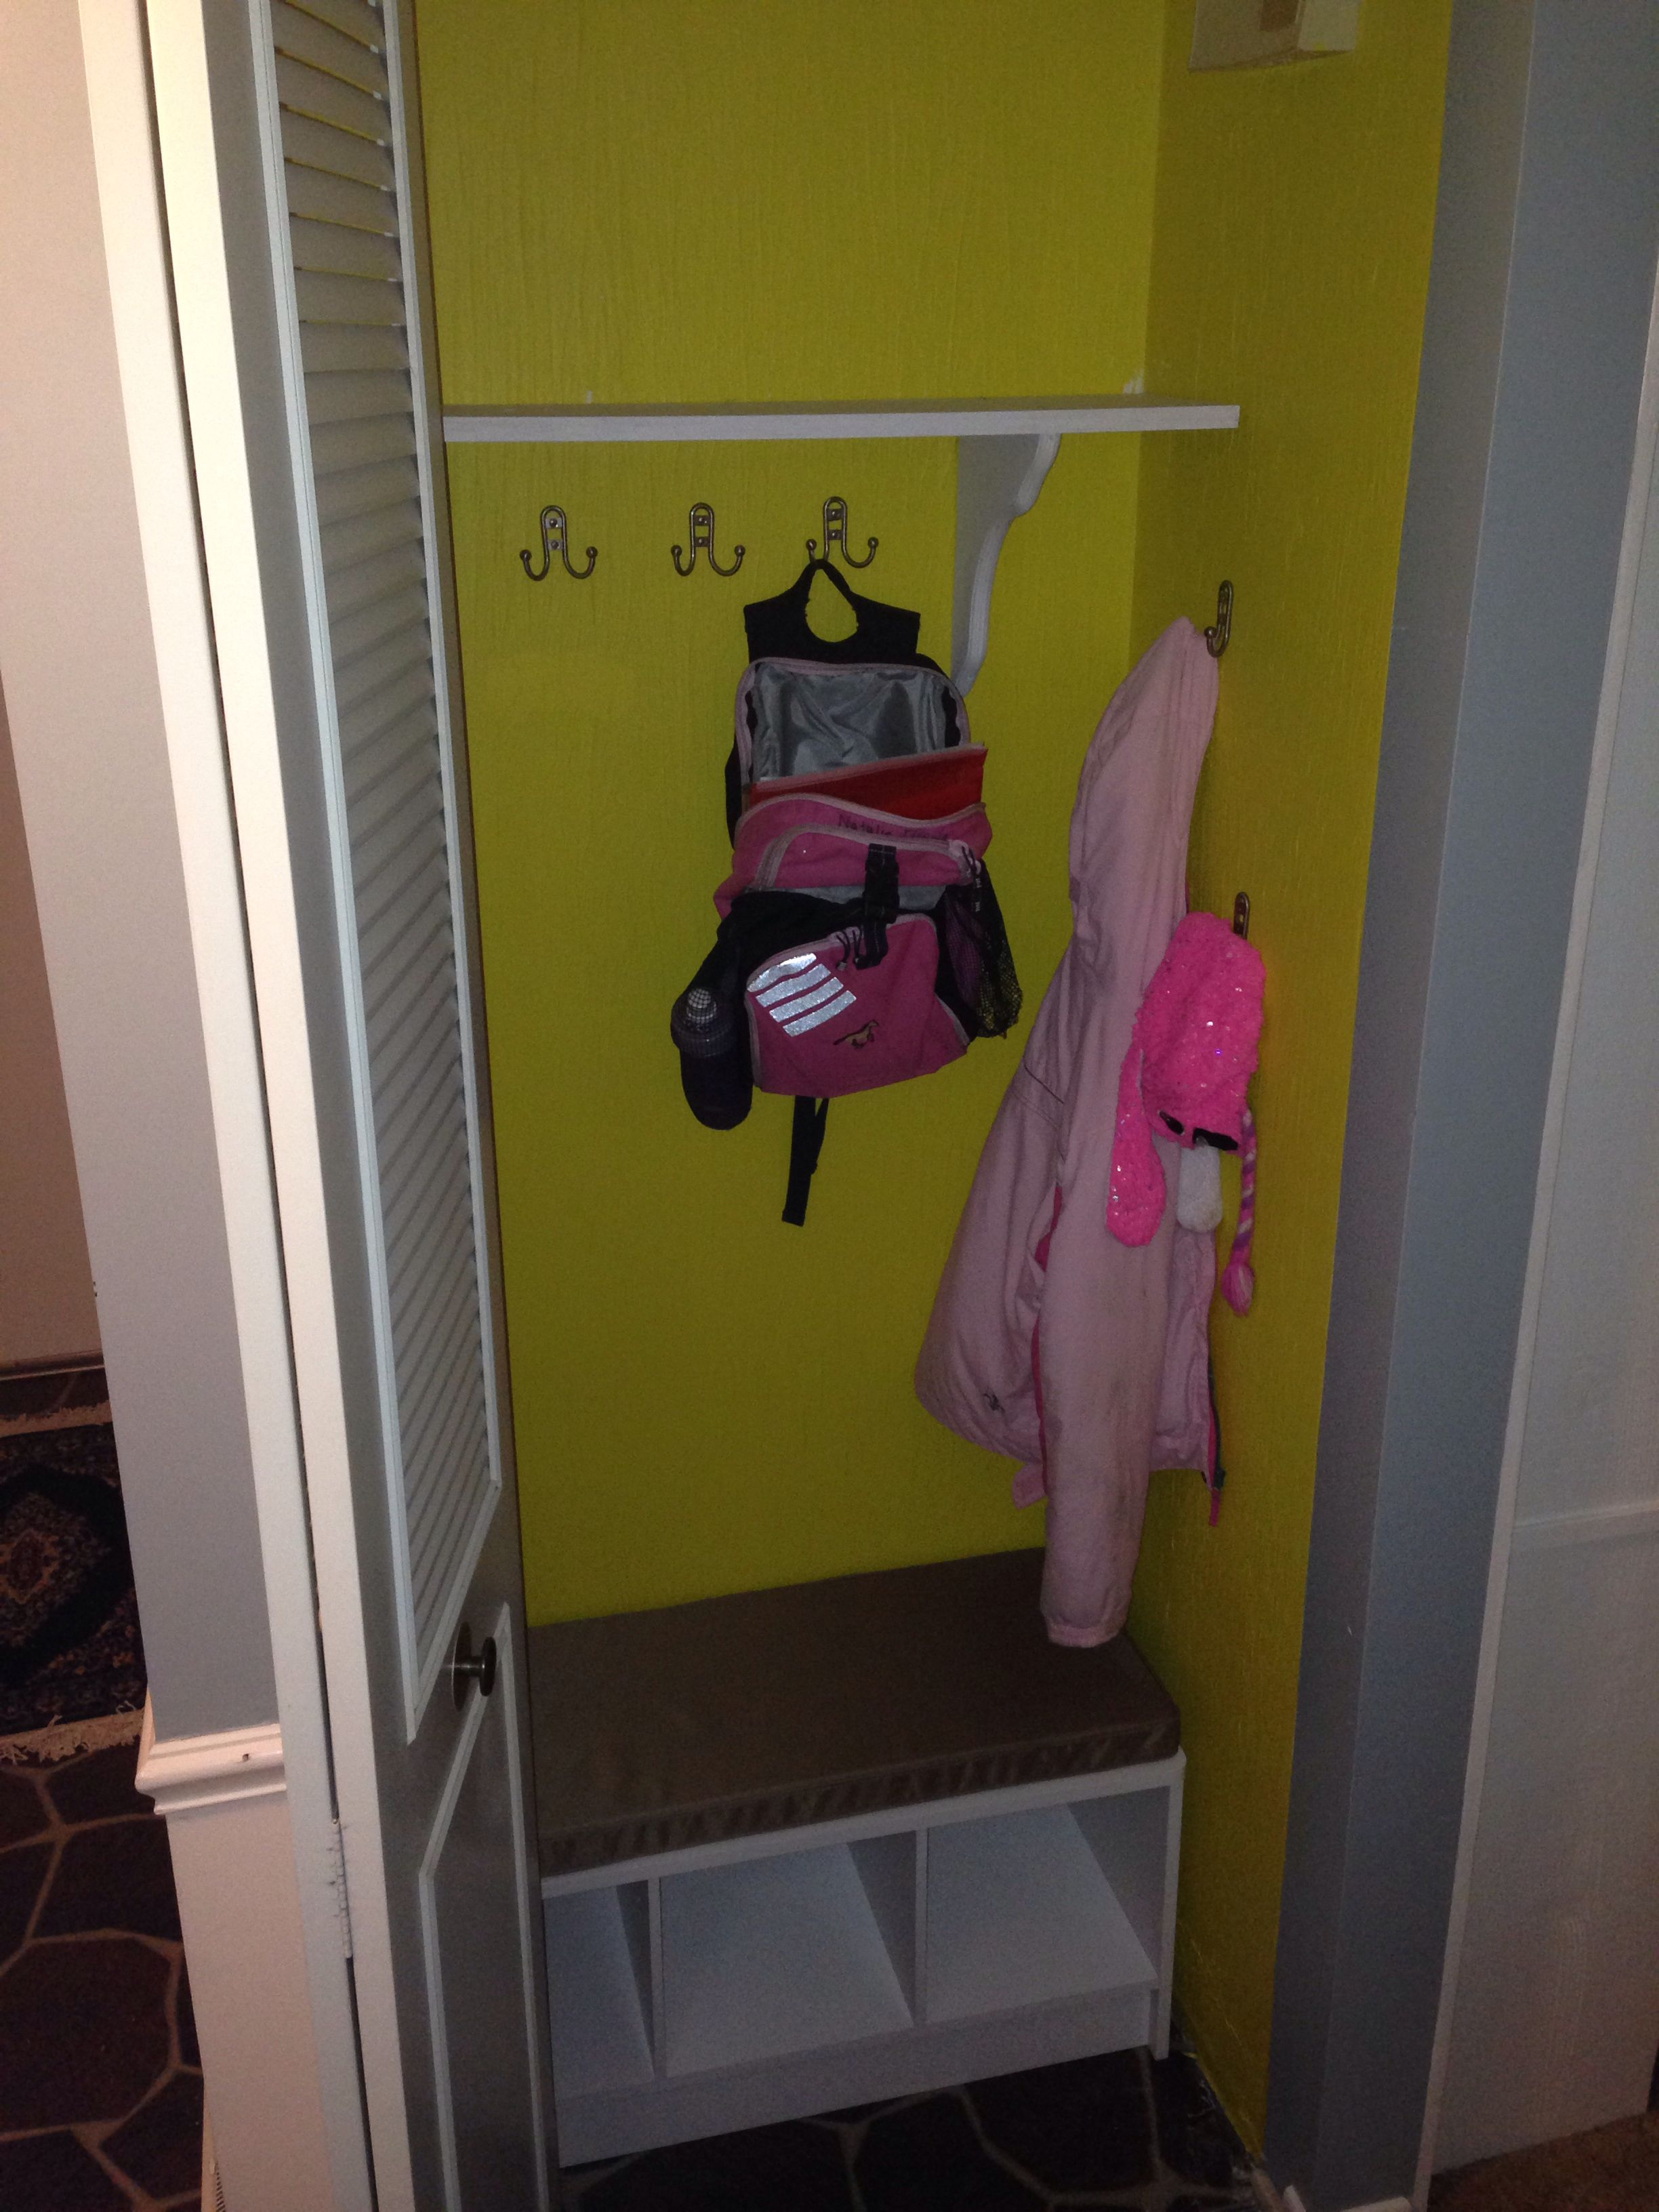 Hooks to hang sports bags, backpack, other bags.  Small panty/closet turned into a kid closet.